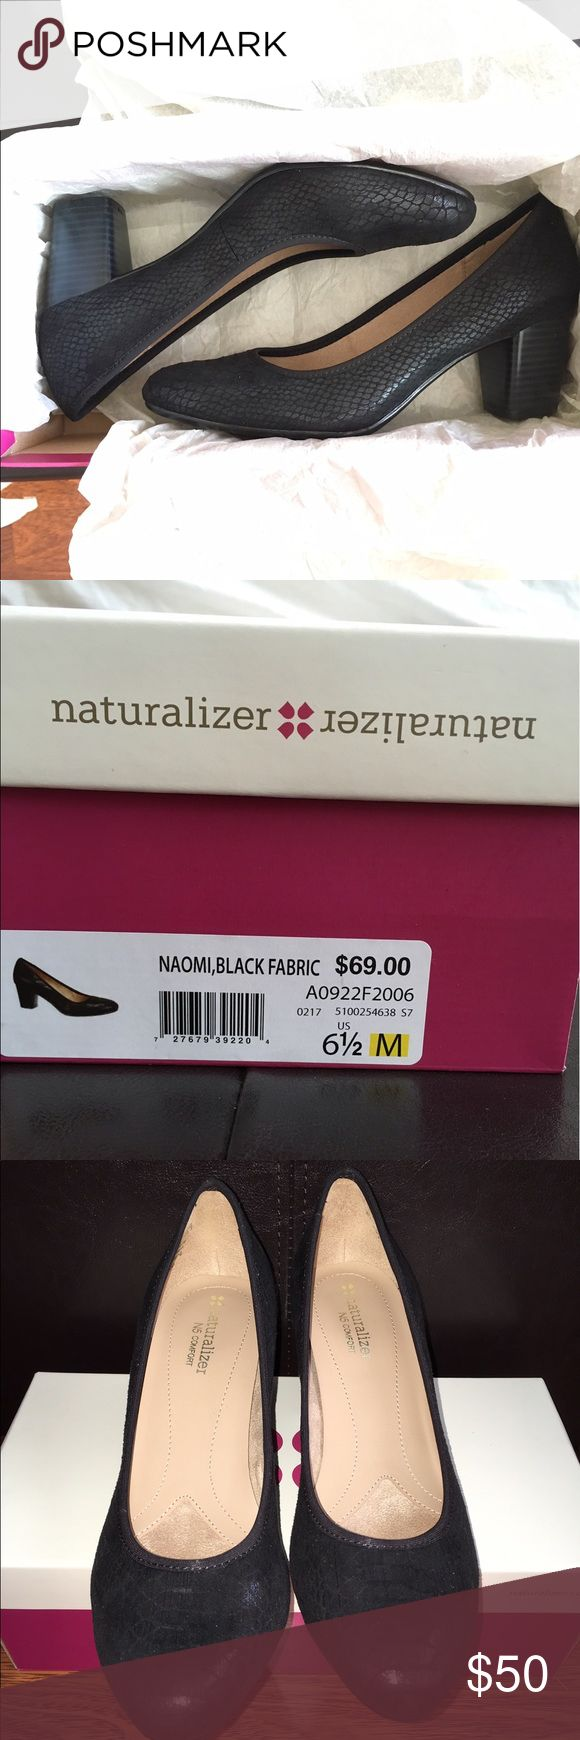 Naturalizer Naomi Black snakeskin heels Naturalizer Naomi Black Snakeskin 2 1/2 inch heels.  Size 6 1/2M.  Brand new with box.  Never worn.  Slightly too big for me. Naturalizer Shoes Heels